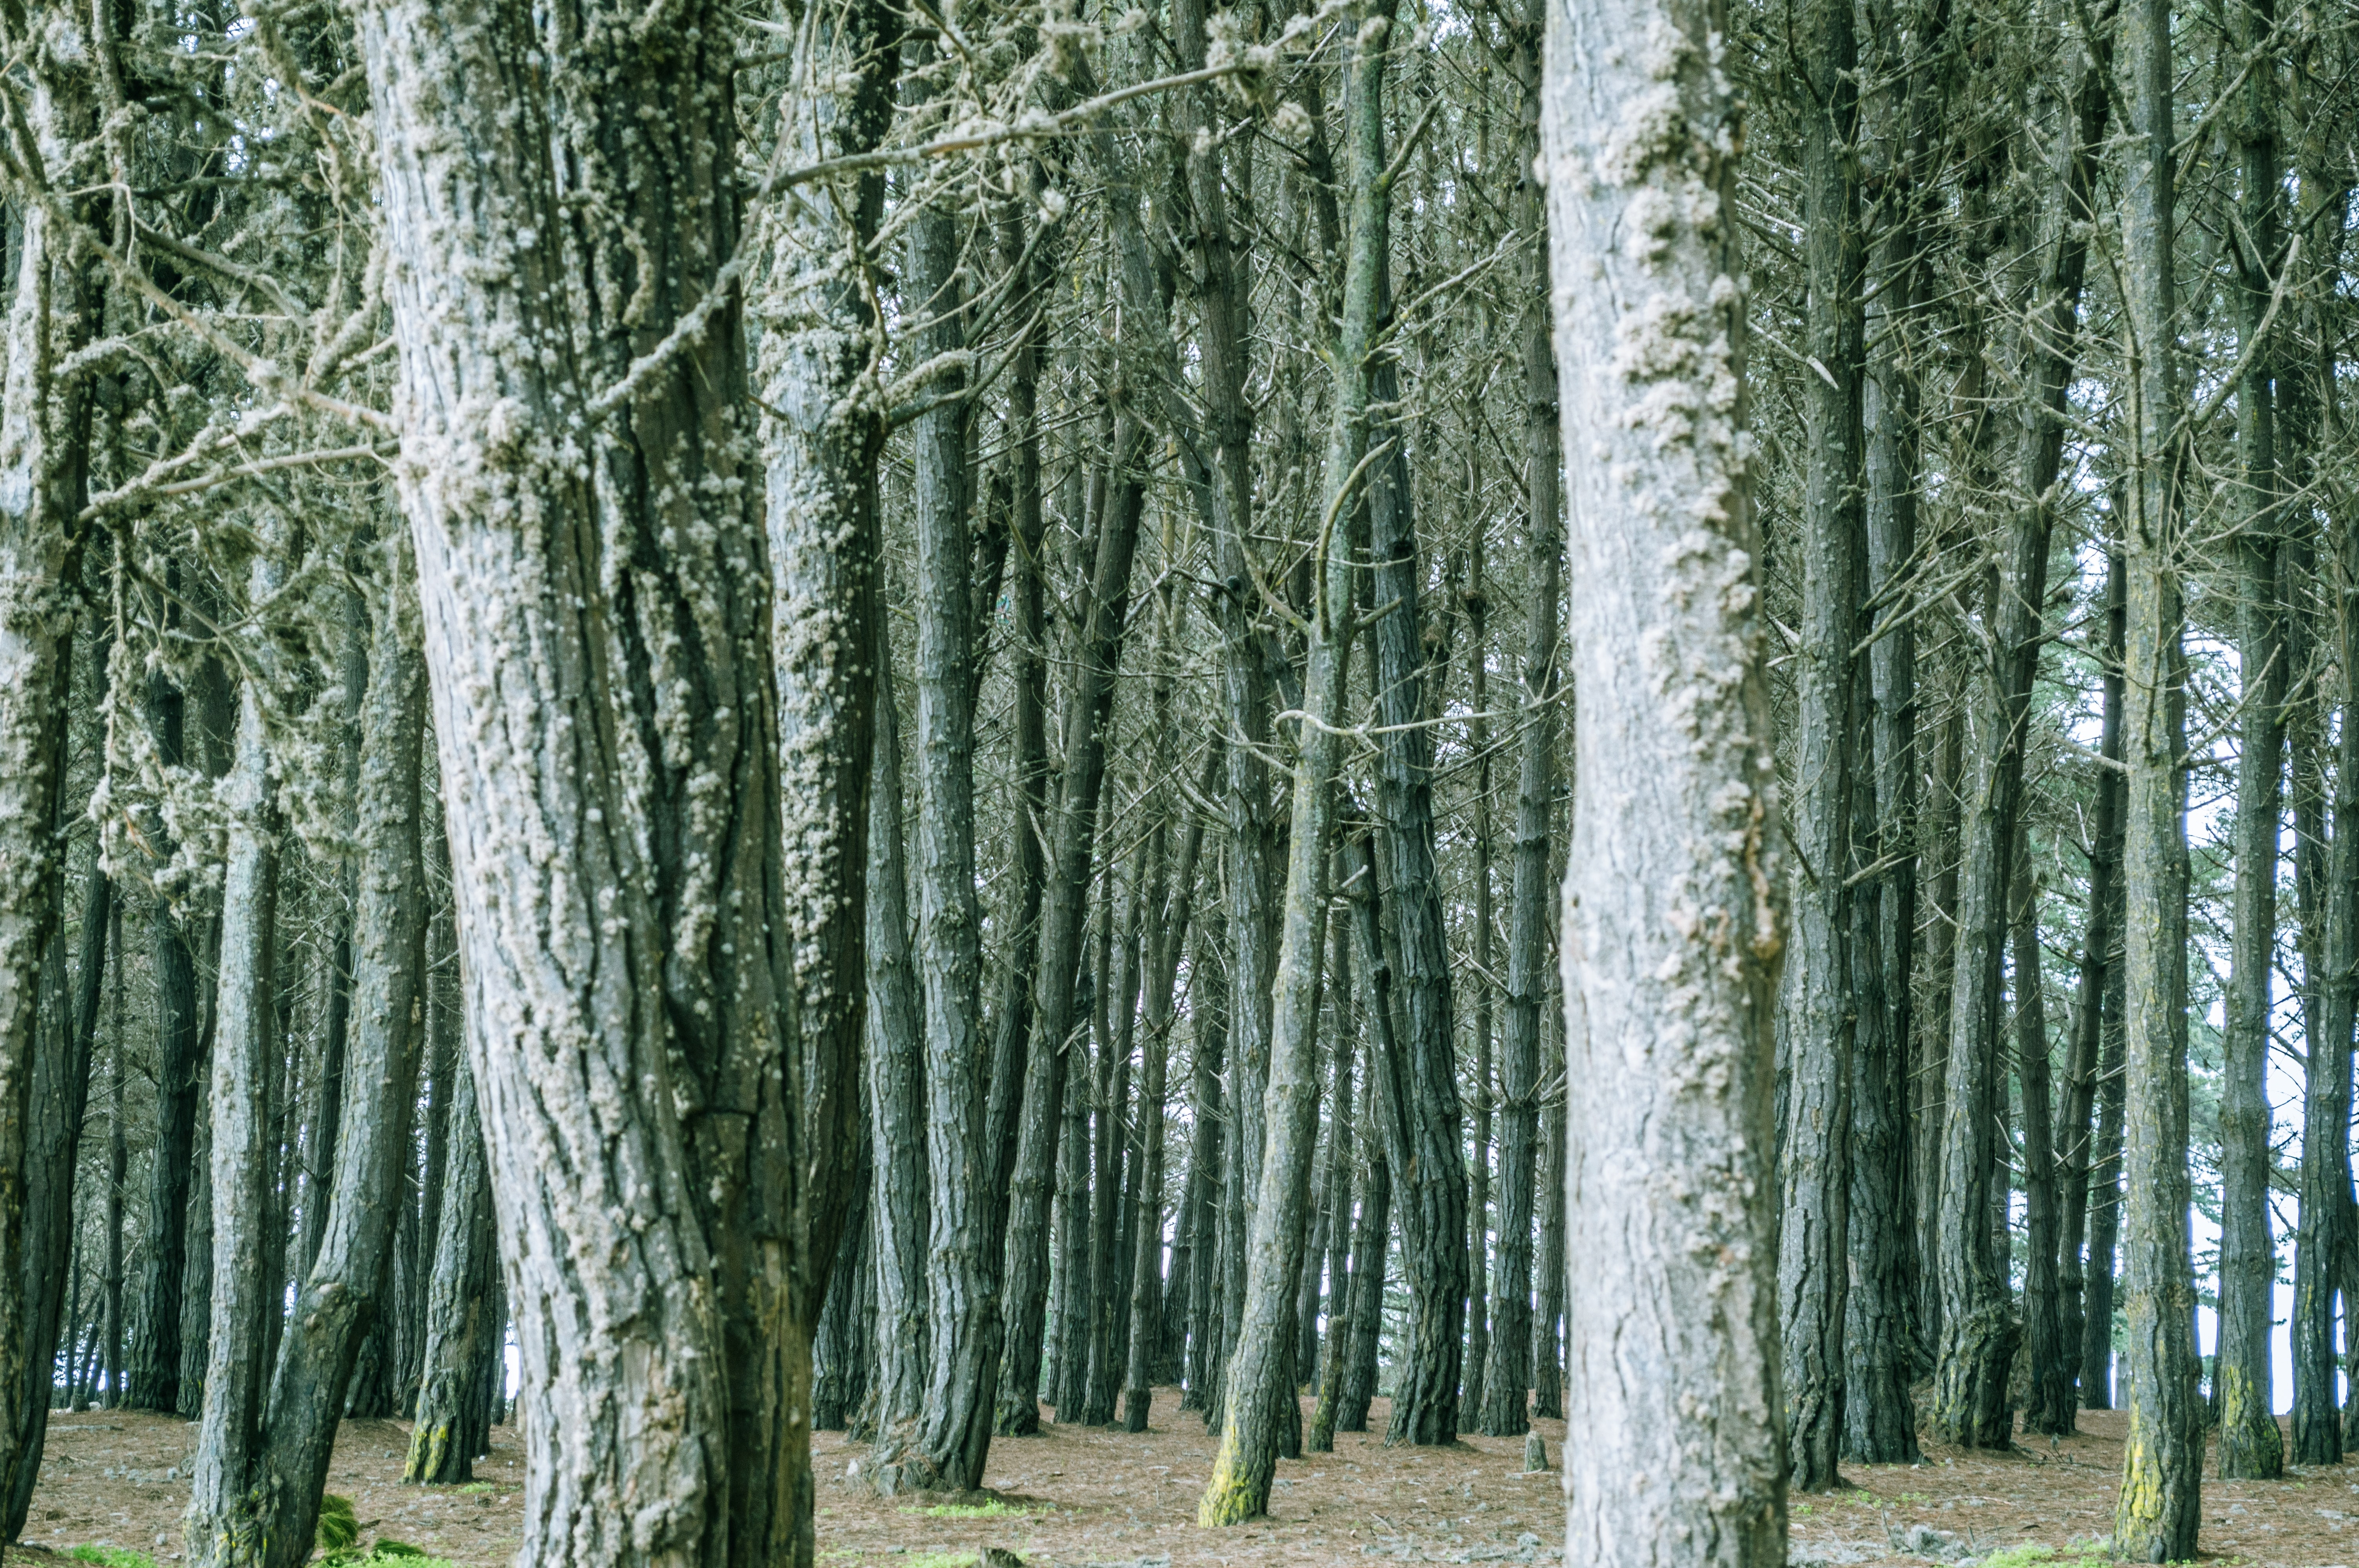 Grayish tree trunks in the middle of a forest